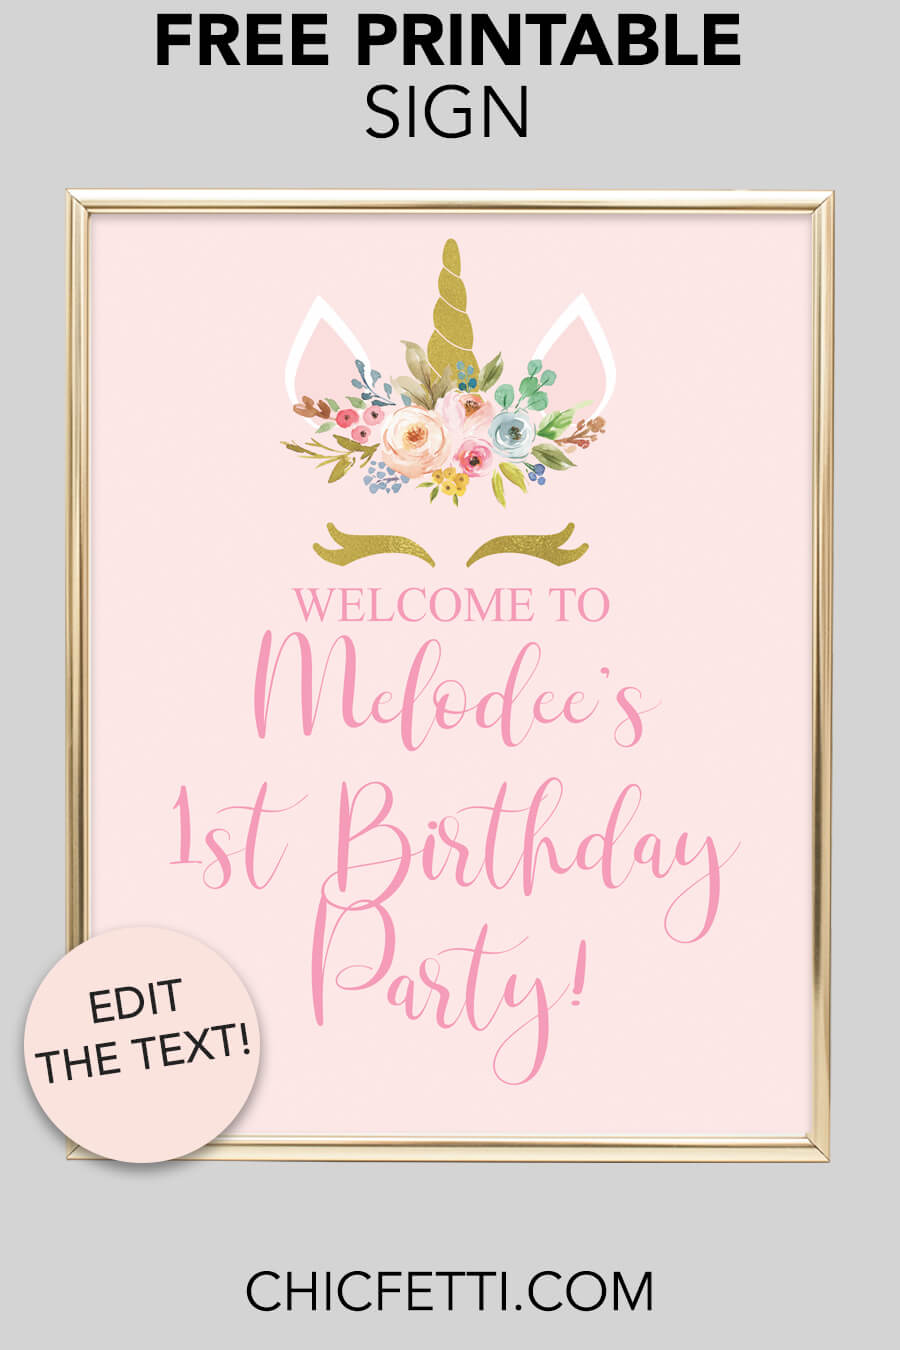 Free Printable Unicorn Party Welcome Sign - download and print this free printable unicorn welcome sign for your party or event. This sign is the perfect sign for a unicorn party. #party #partyideas #unicorn #unicornparty #unicornbirthday #unicornpartyideas #partysign